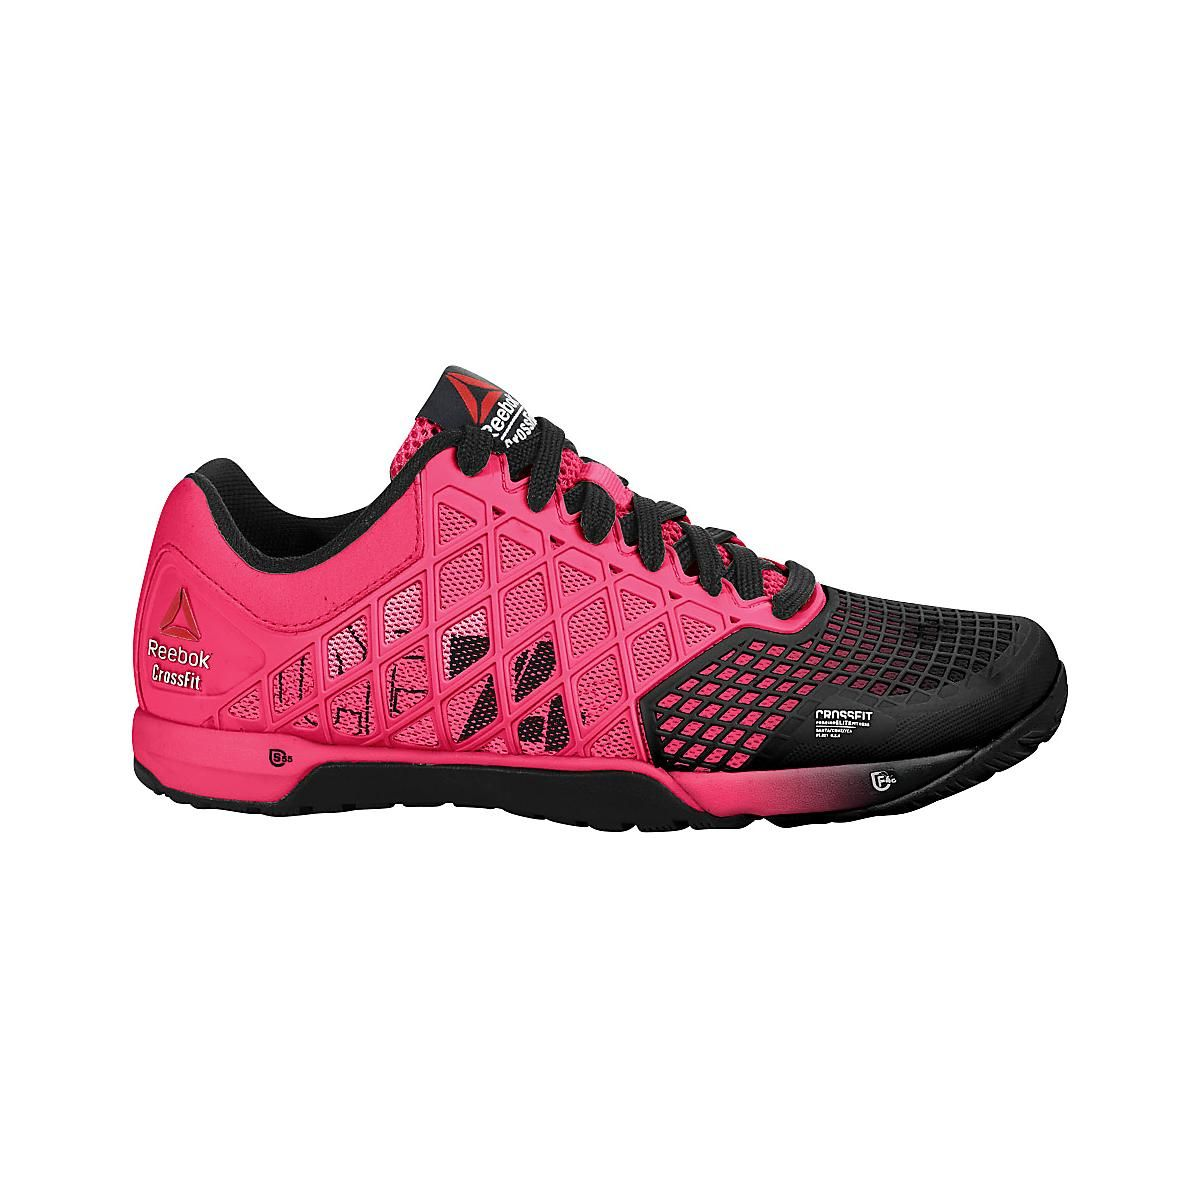 c72ae3416bb Take your CrossFit workouts to the next level with the latest edition of  Reeboks most versatile